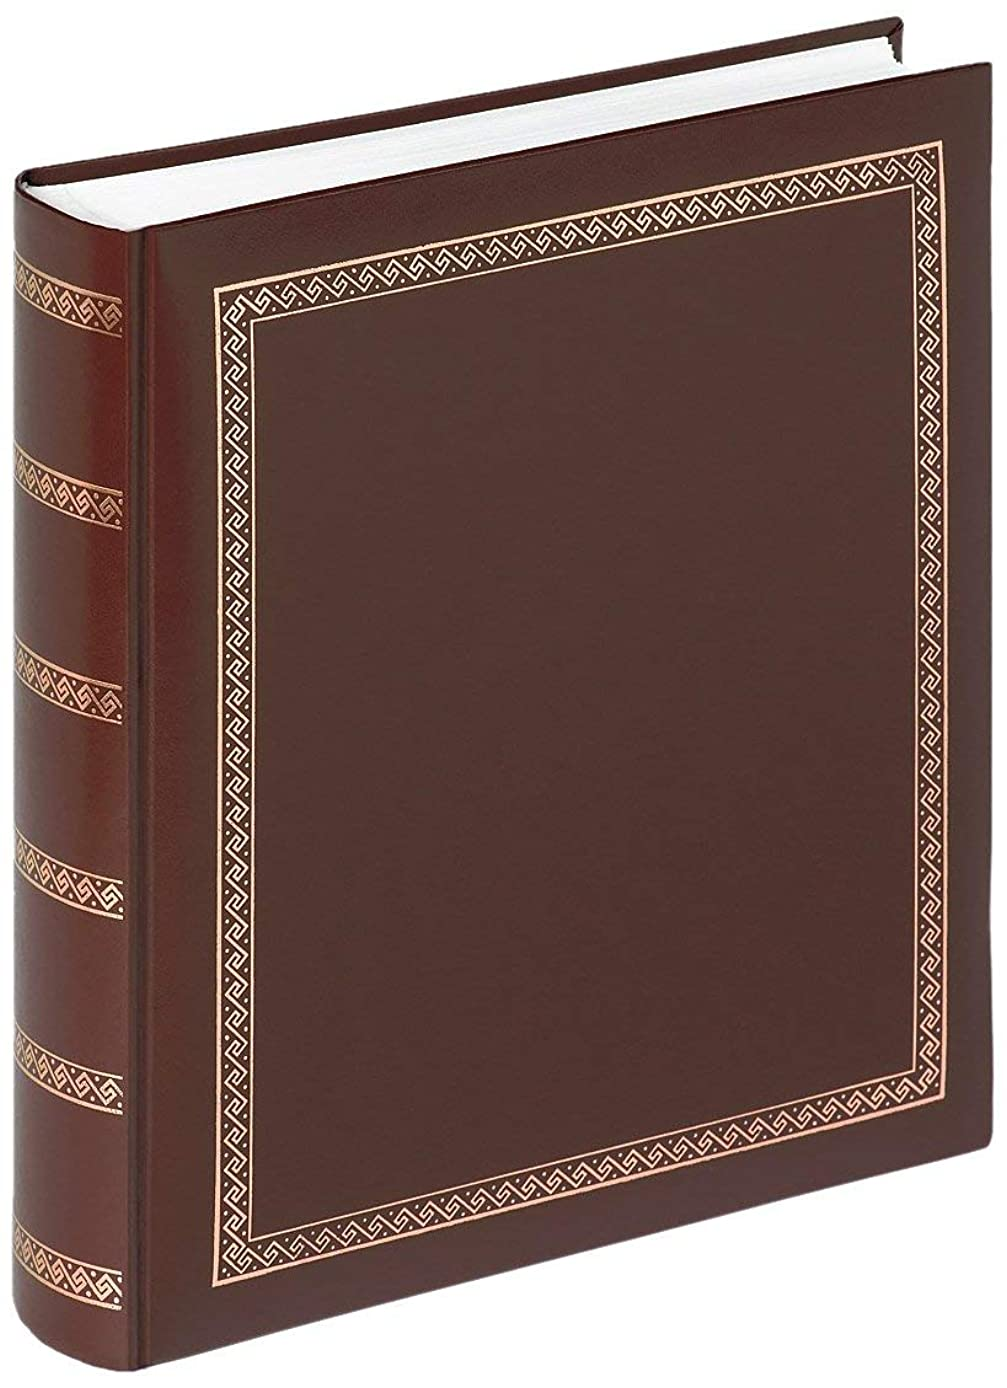 Walther design MX-101-P Das Schicke Dicke artificial leather book bound album with gold embossing, 11.4 x 12.5 inch (29 x 32 cm), 100 white pages, brown